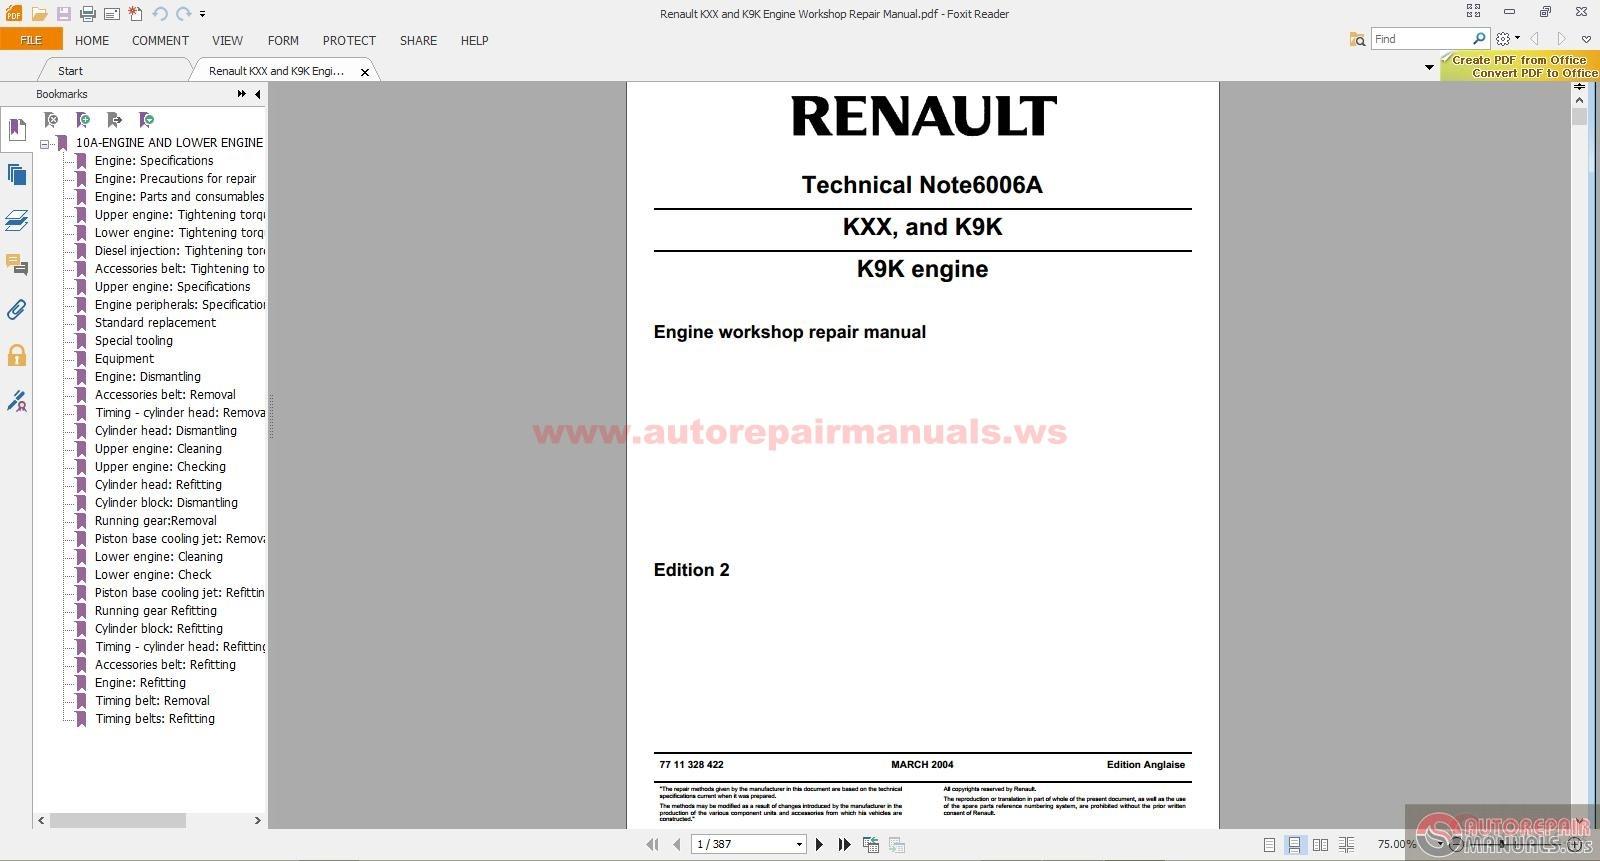 Renault Kxx And K9k Engine Workshop Repair Manual